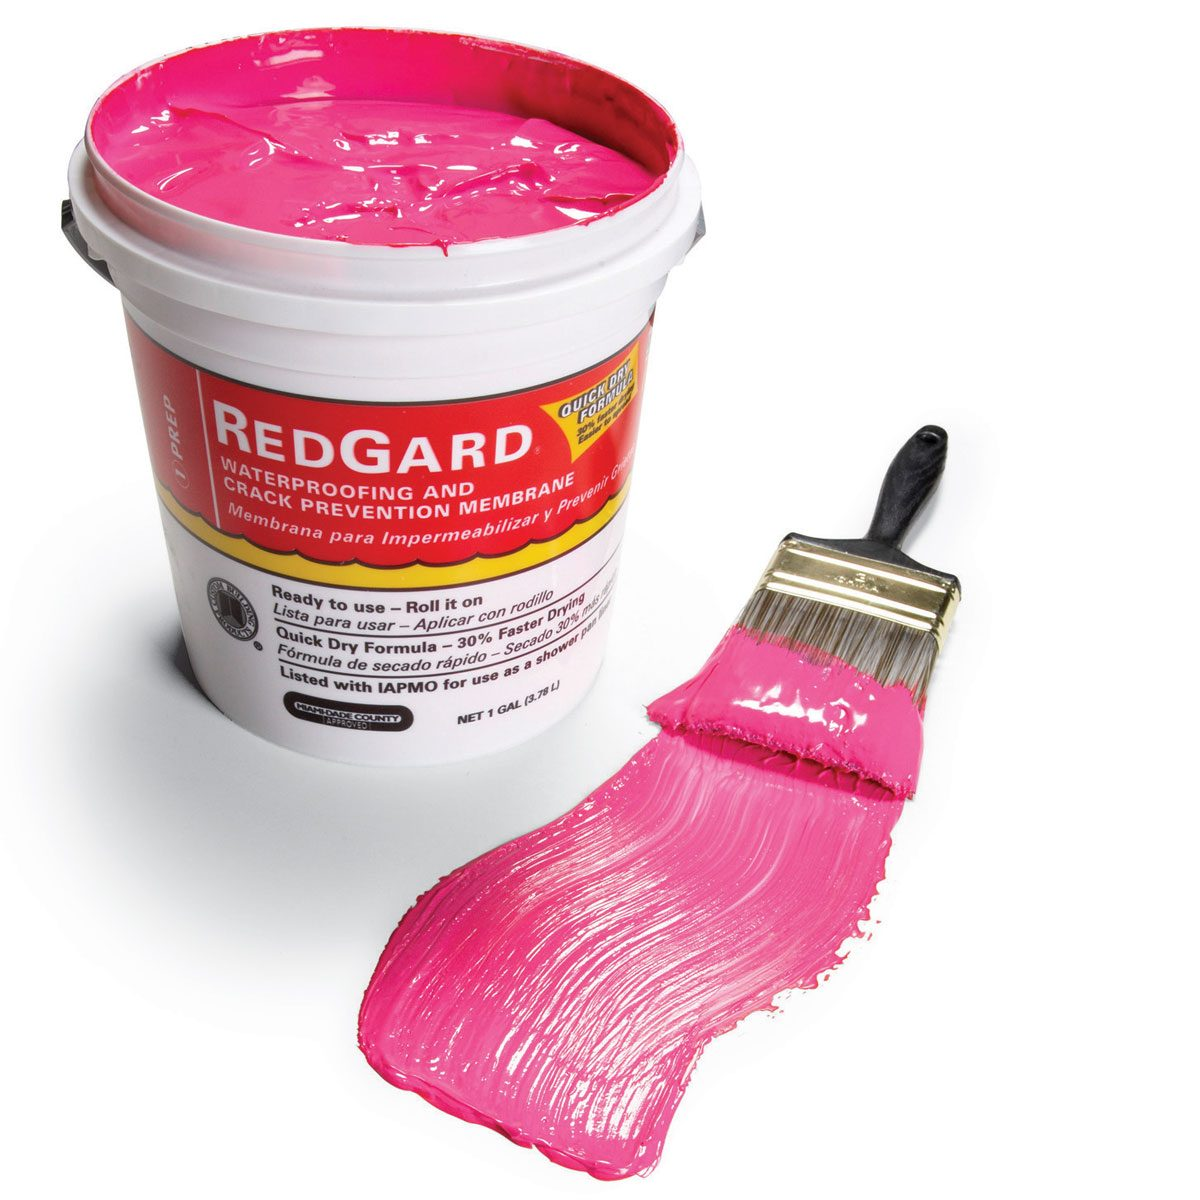 RedGard is a liquid waterproofing